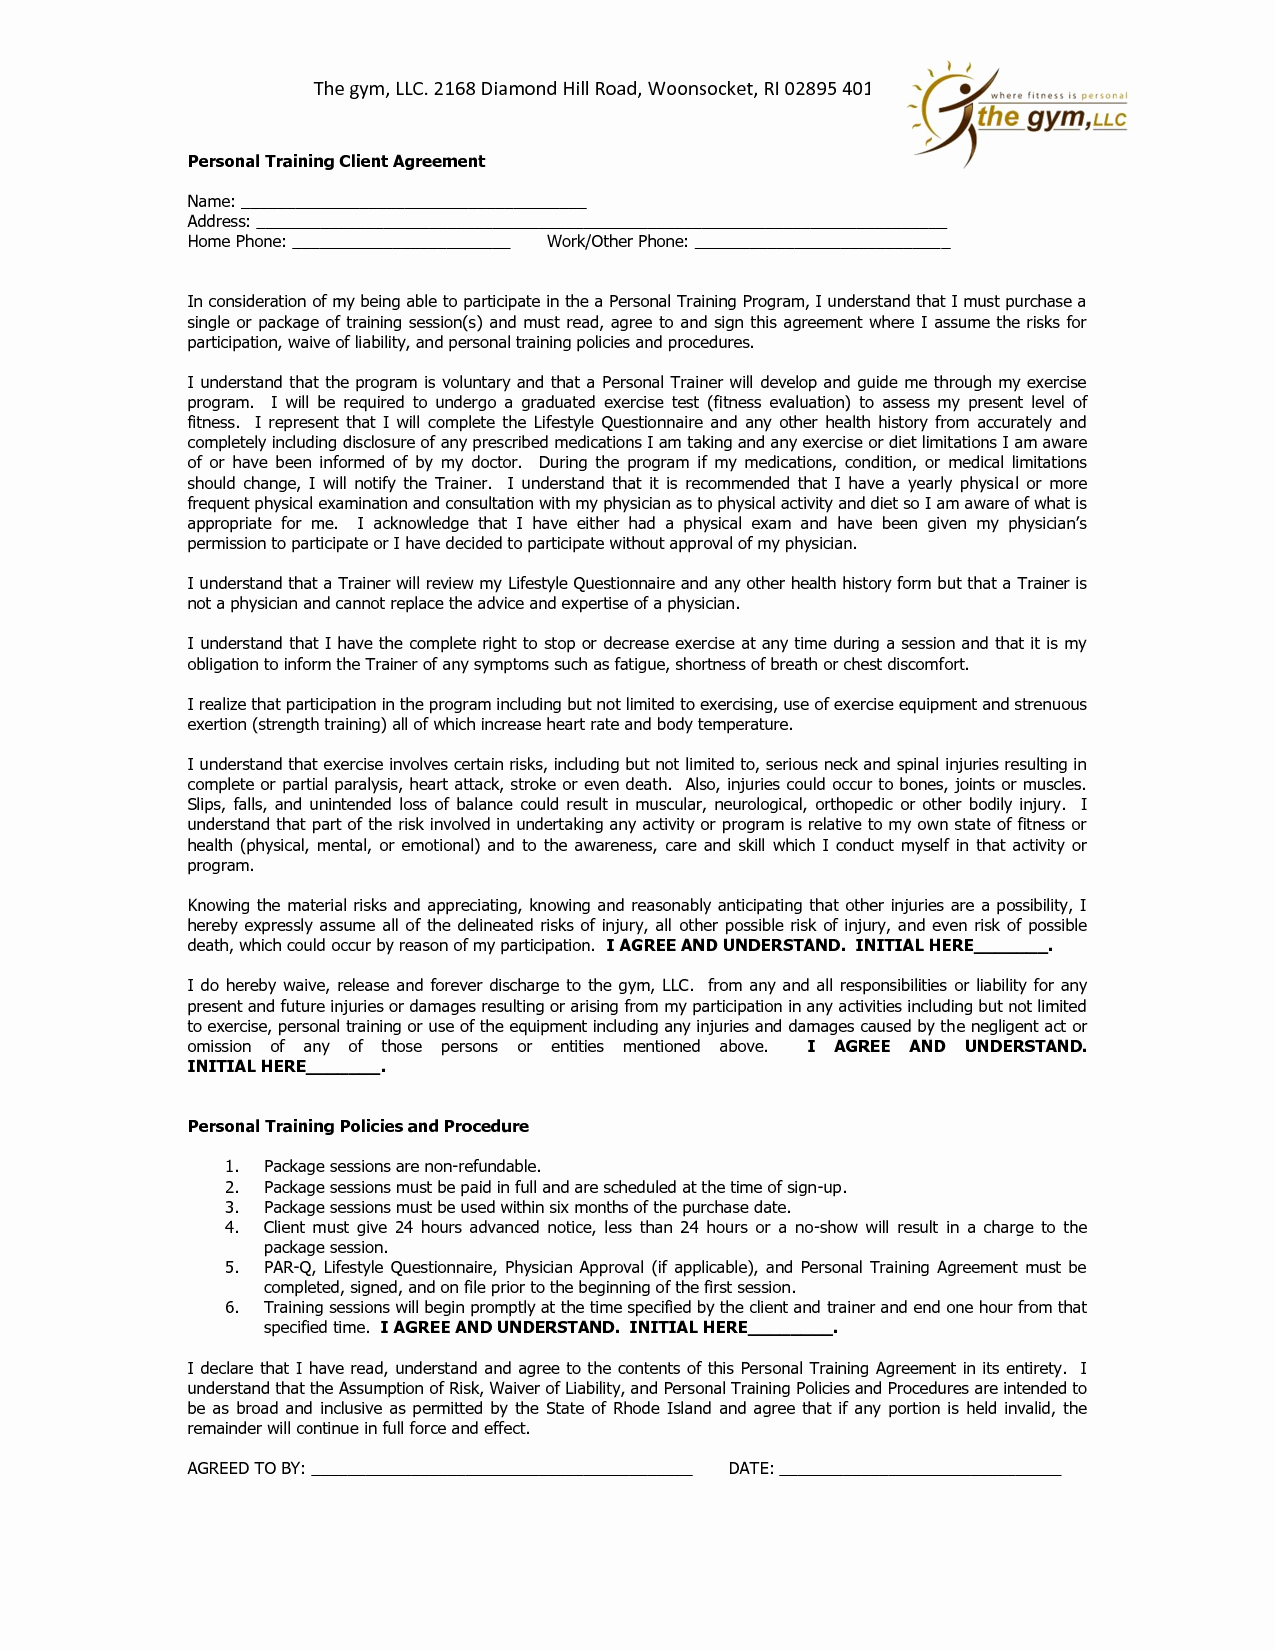 10 Best Of Personal Training Agreement form